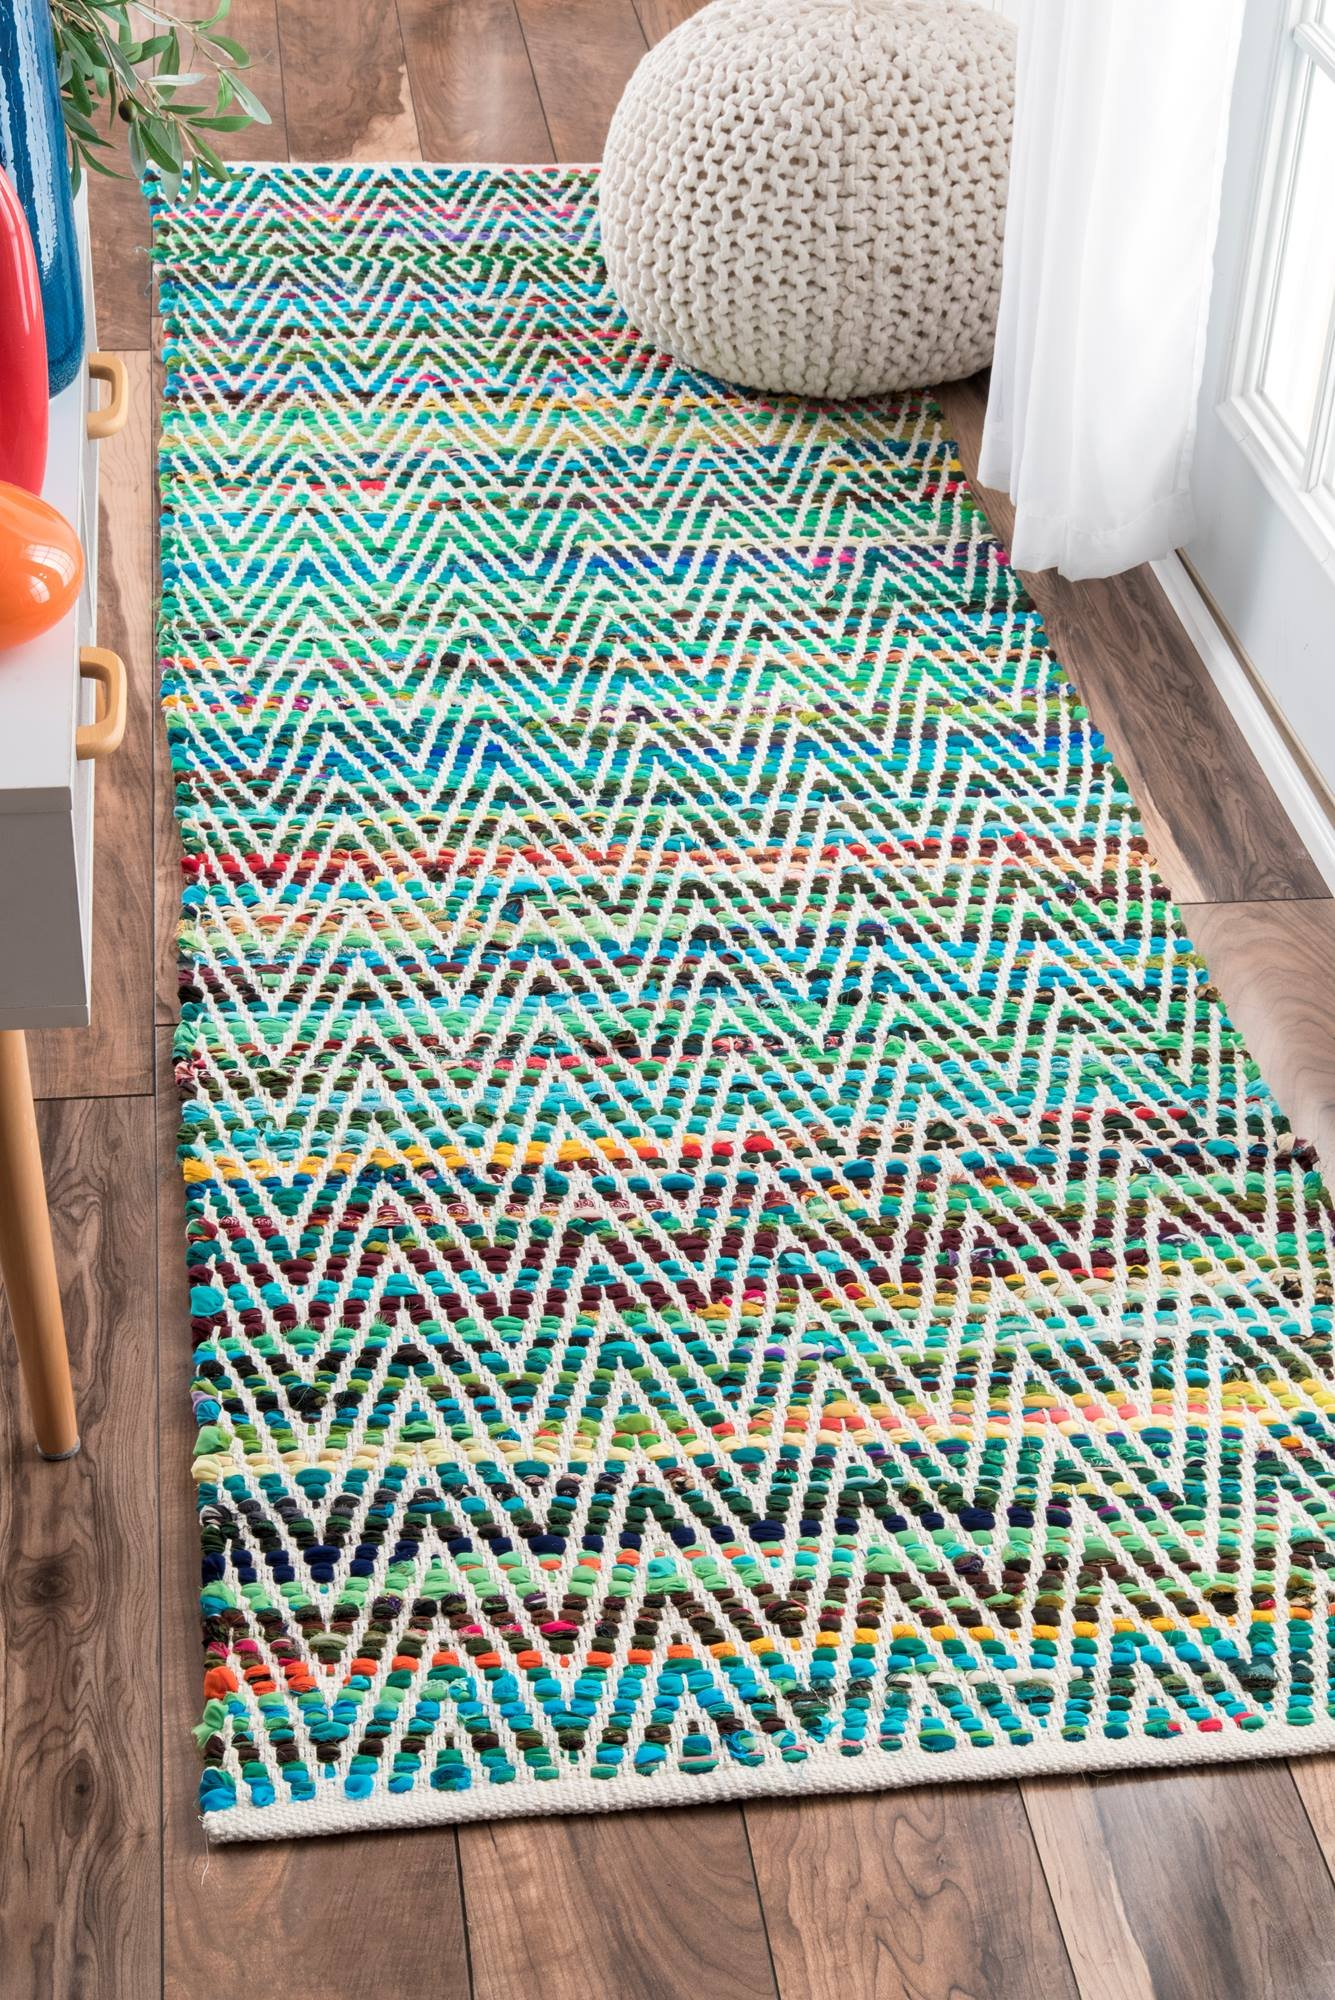 nuLOOM Hand Woven Candy Striped Chevron Runner Area Rugs, 2' 6'' x 8', Green